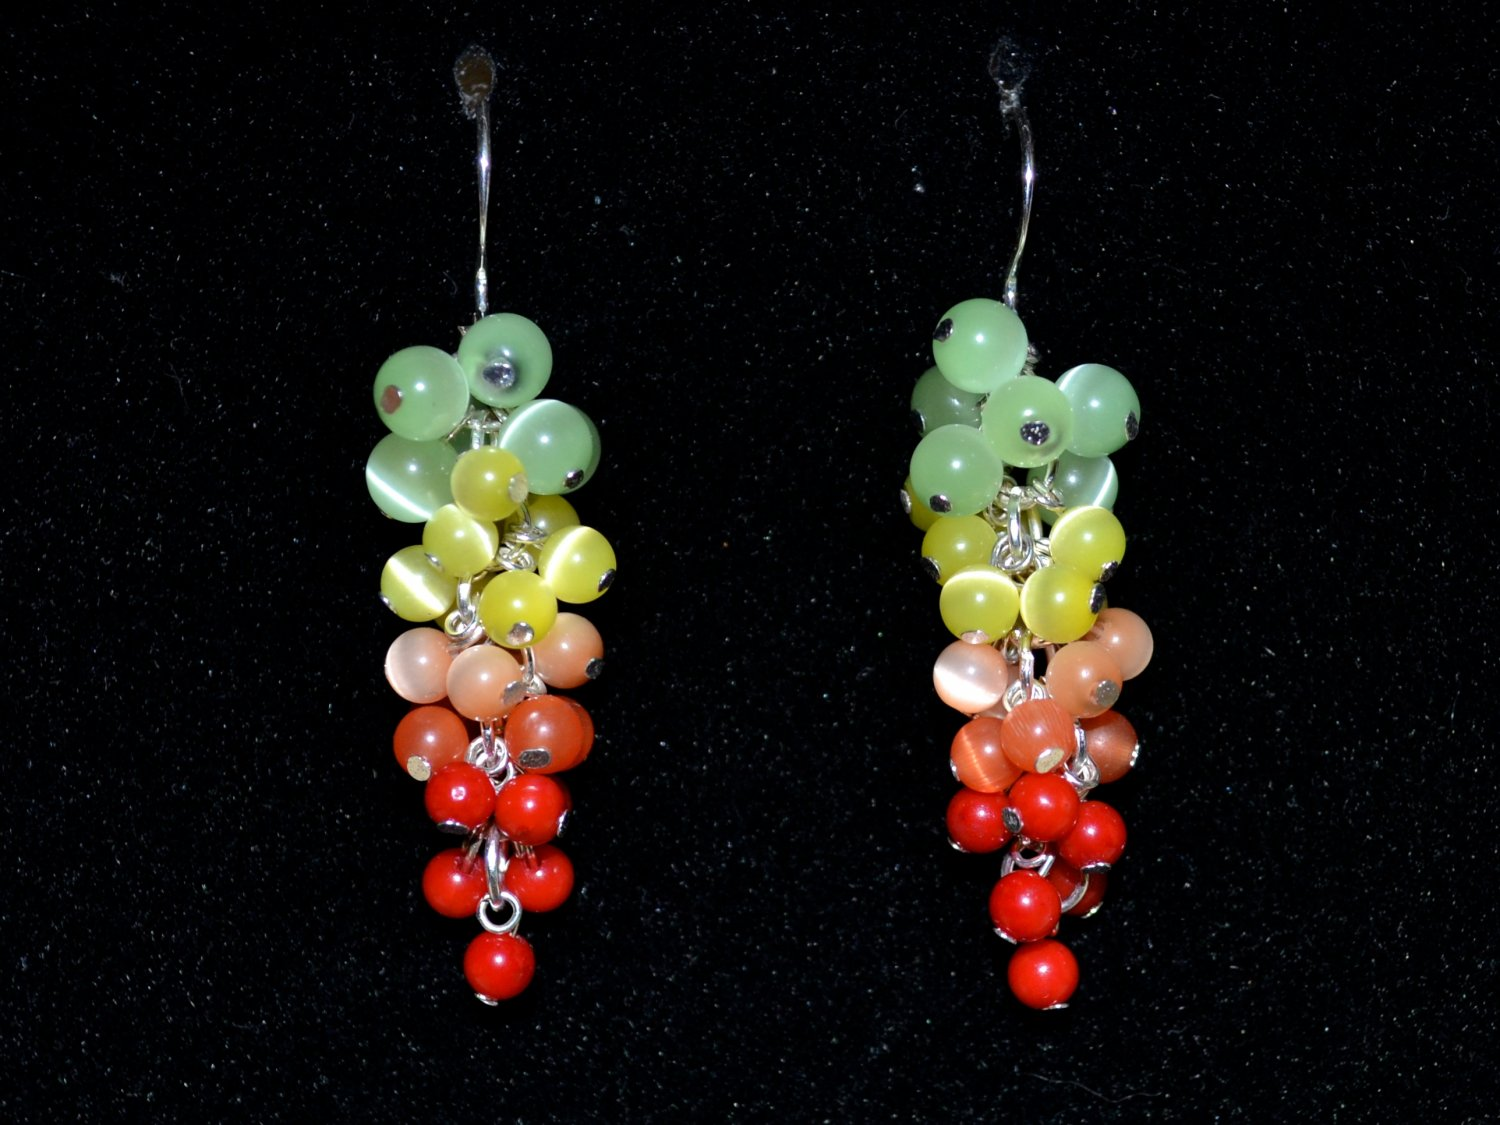 Earrings with cat's-eye and coral dangle from silver earwires